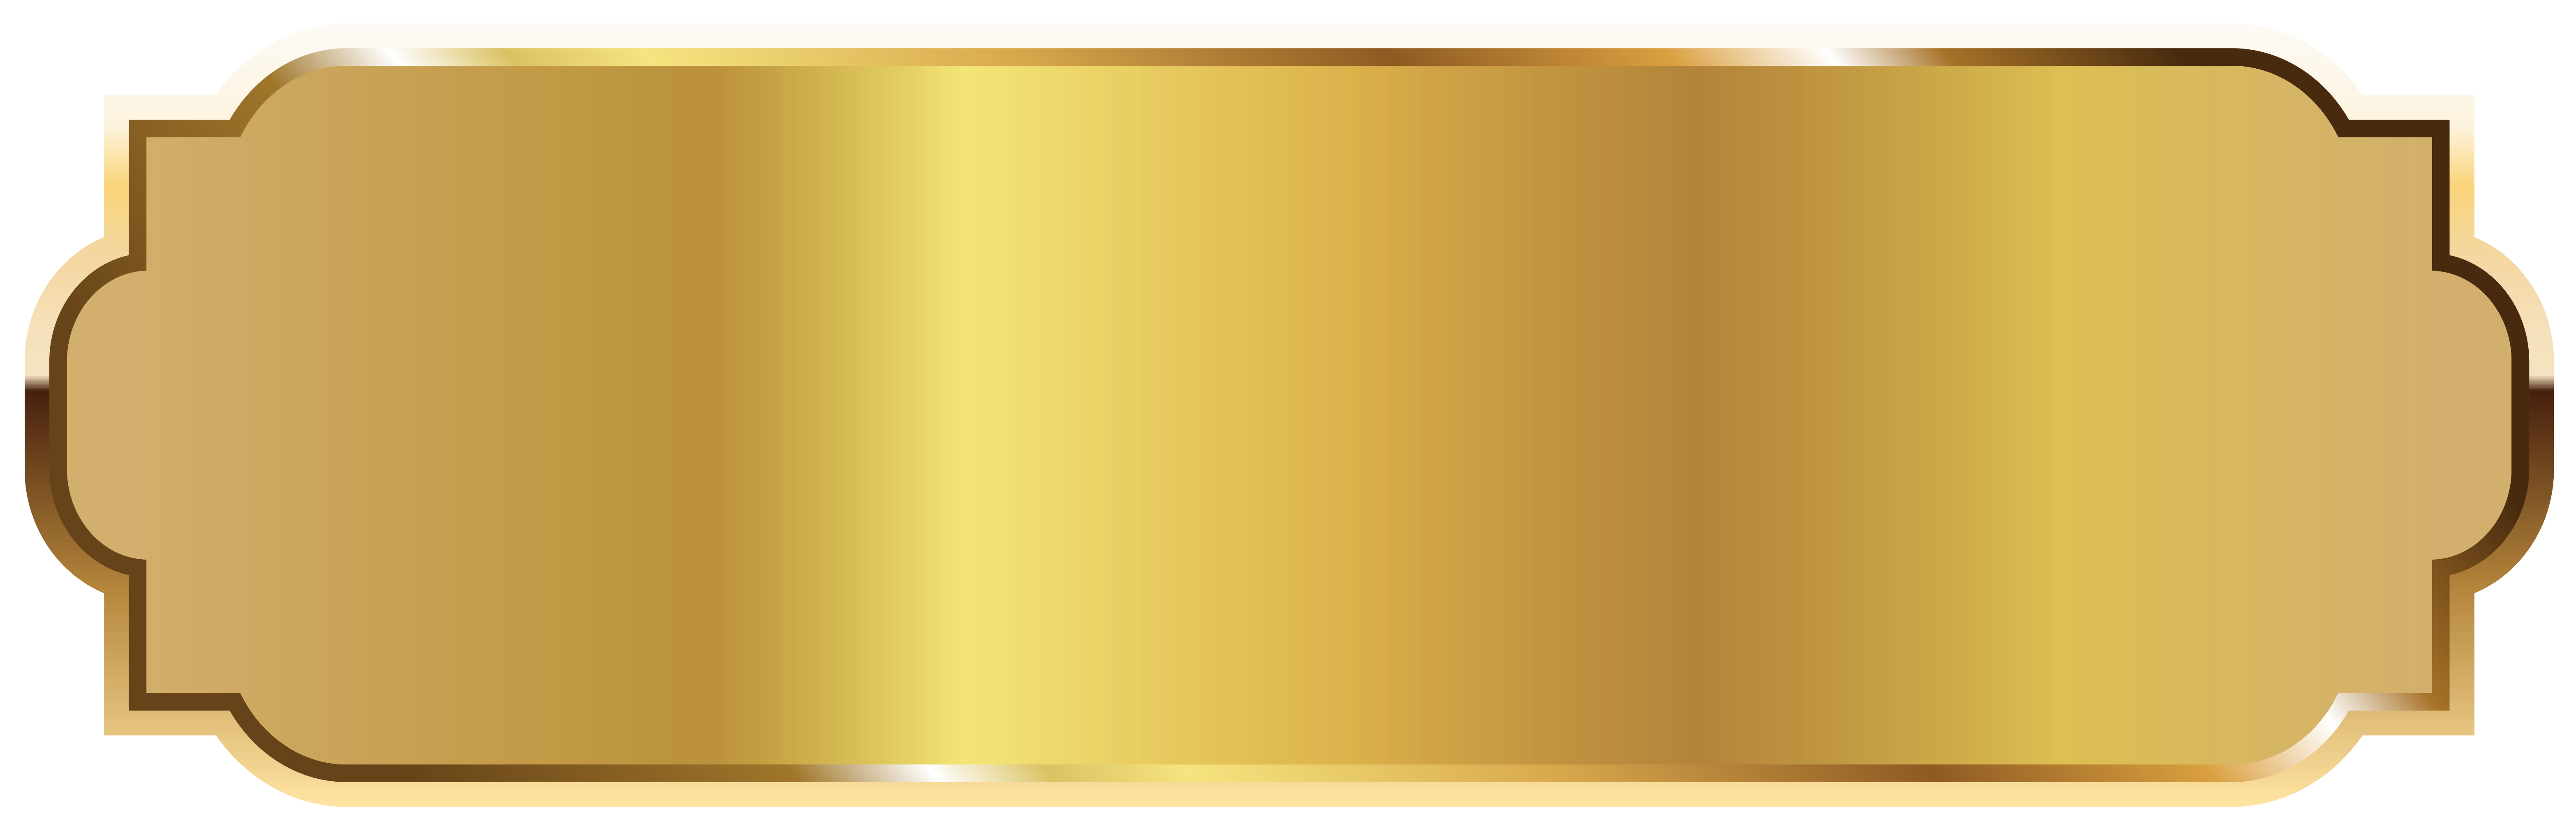 Gold Label Template PNG Picture.